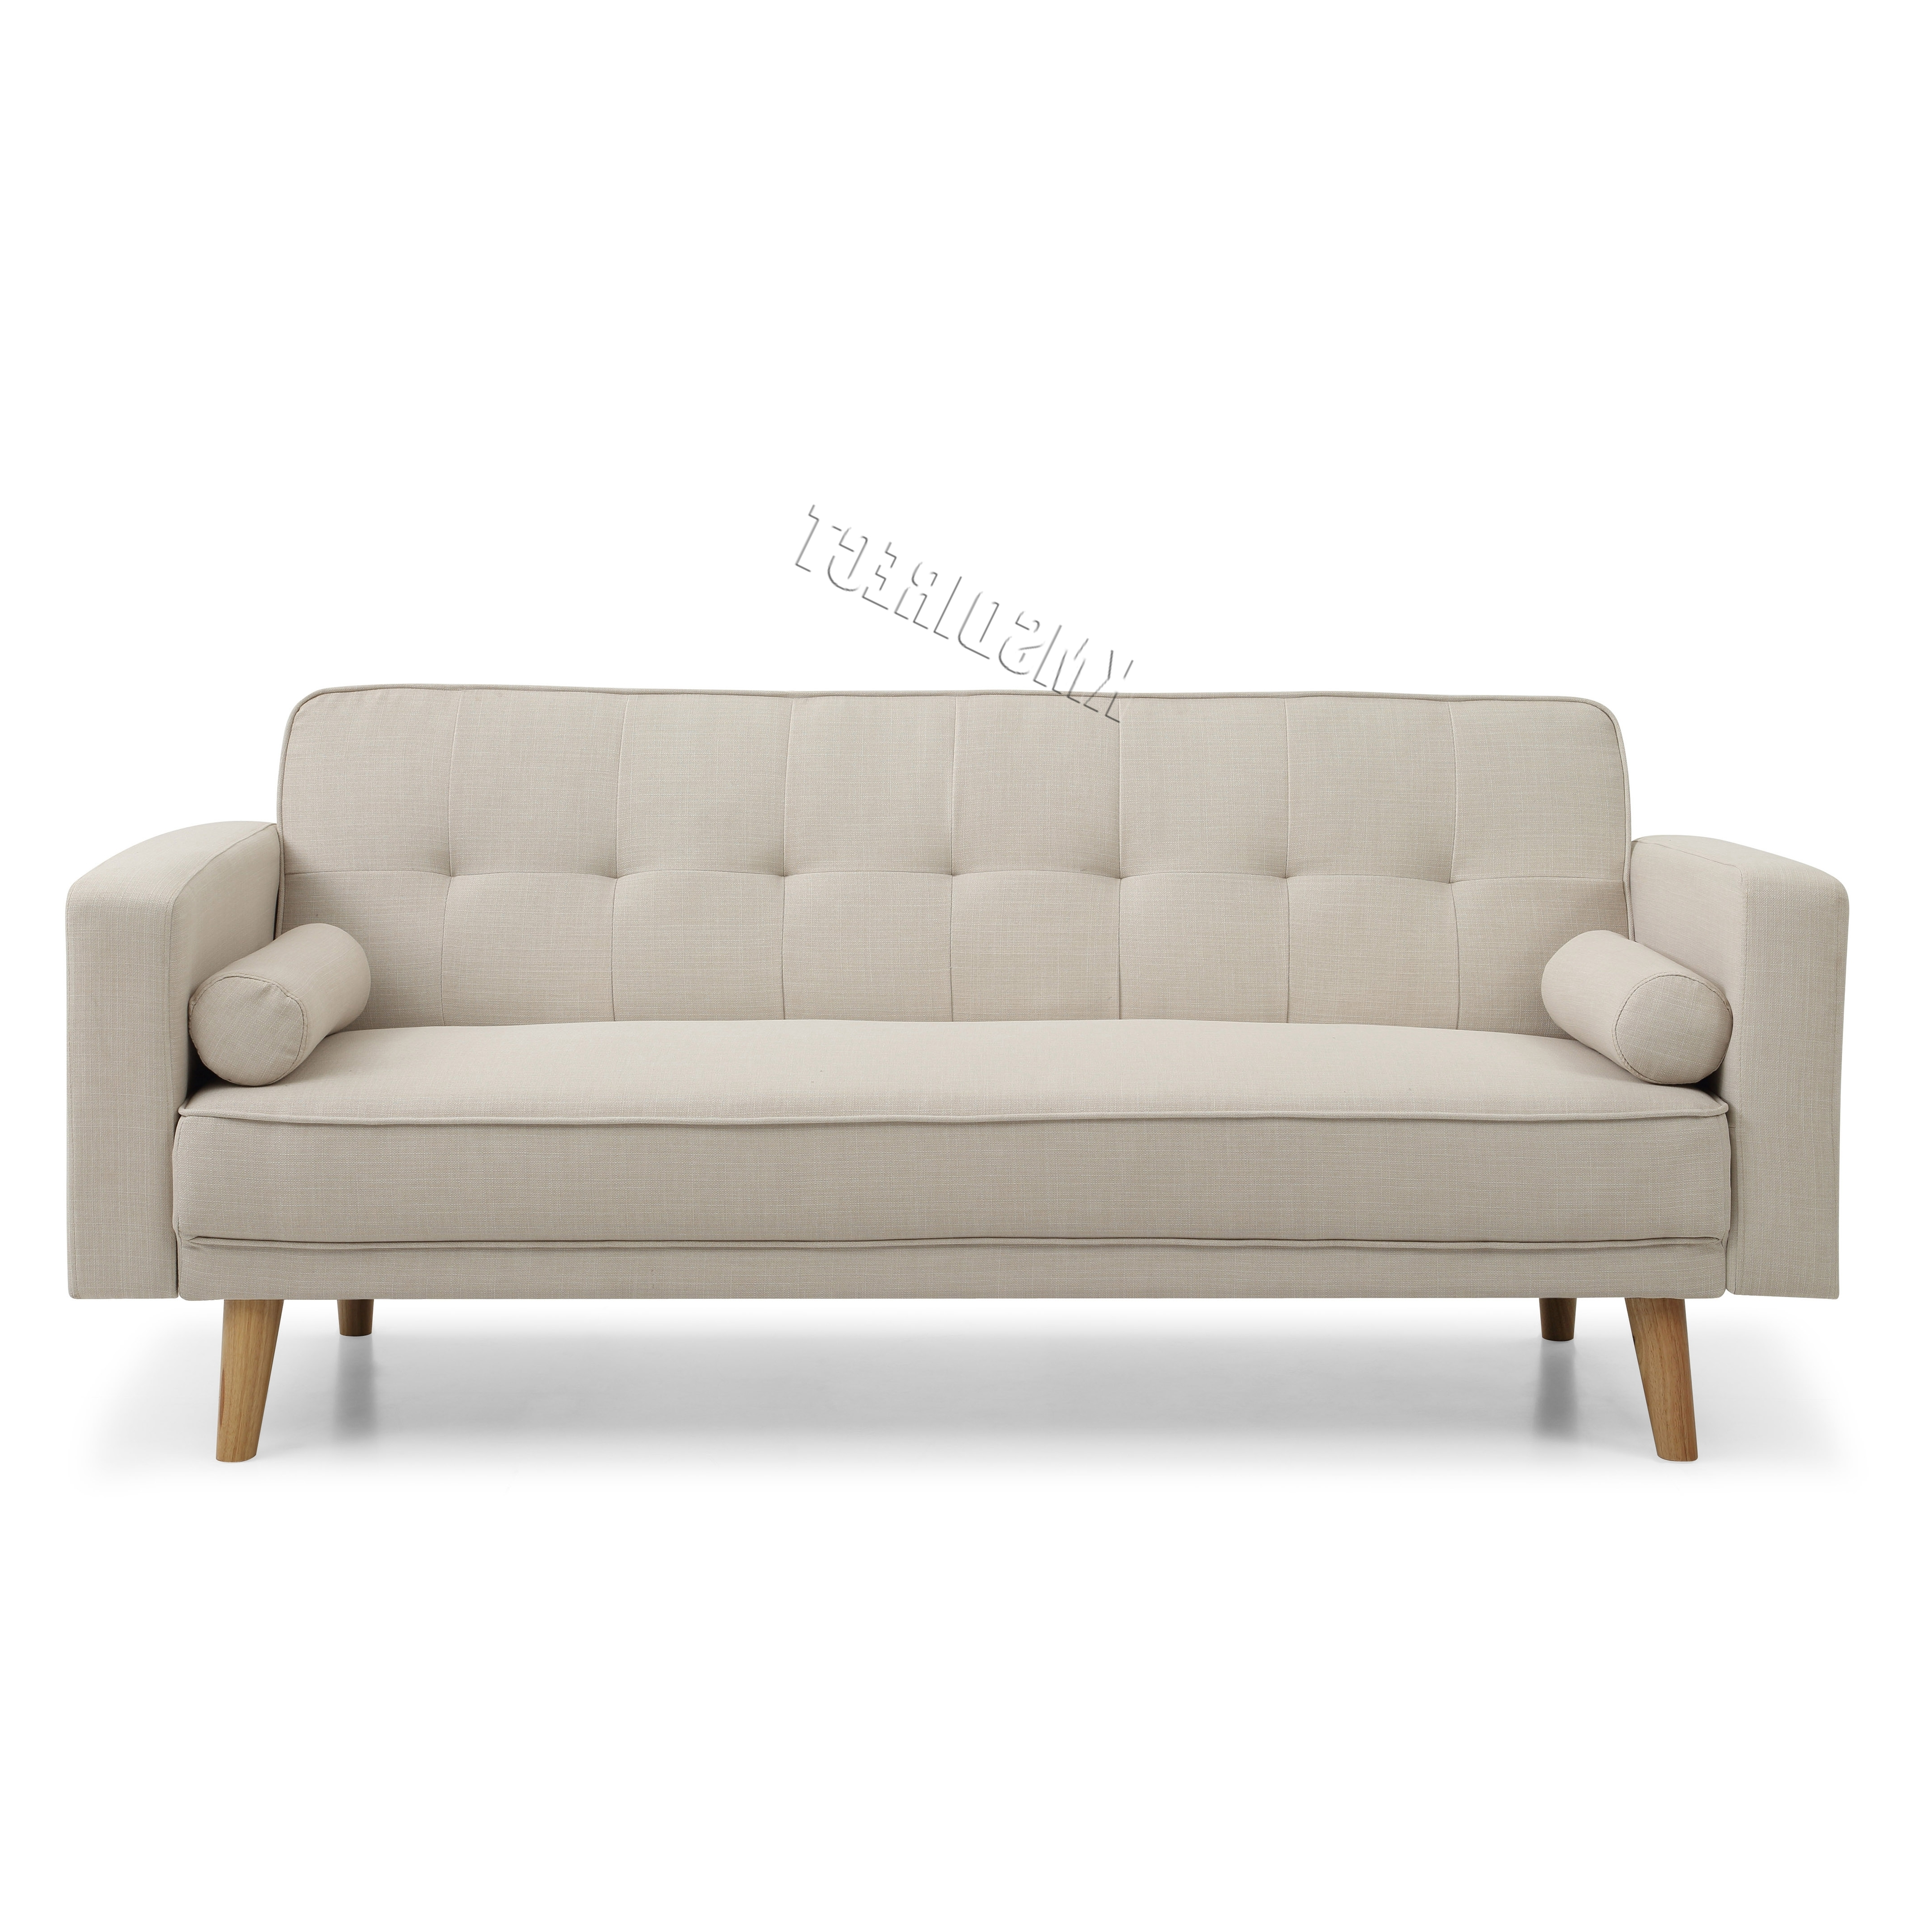 Most Current Modern 3 Seater Sofas Inside Westwood Fabric Sofa Bed 3 Seater Couch Luxury Modern Home (View 13 of 15)